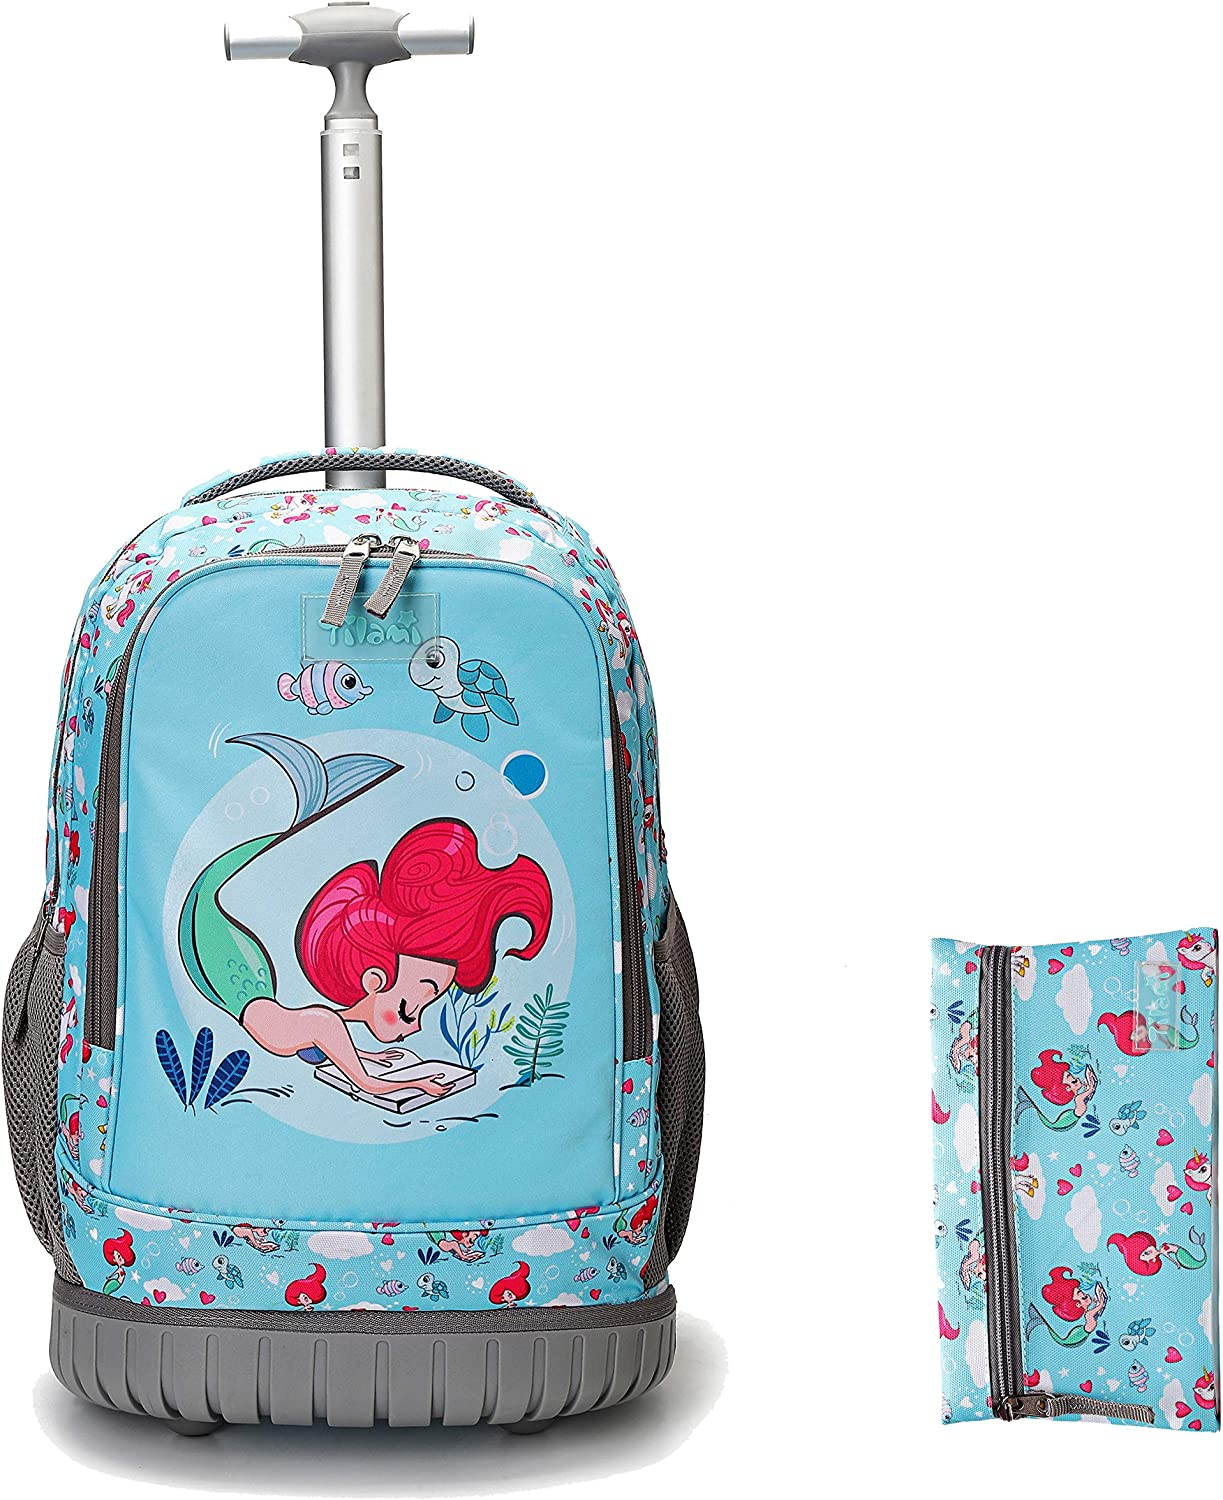 Tilami Rolling Backpack 18 inch with Pencil Case Wheeled Laptop Bag, Mermaid Blue